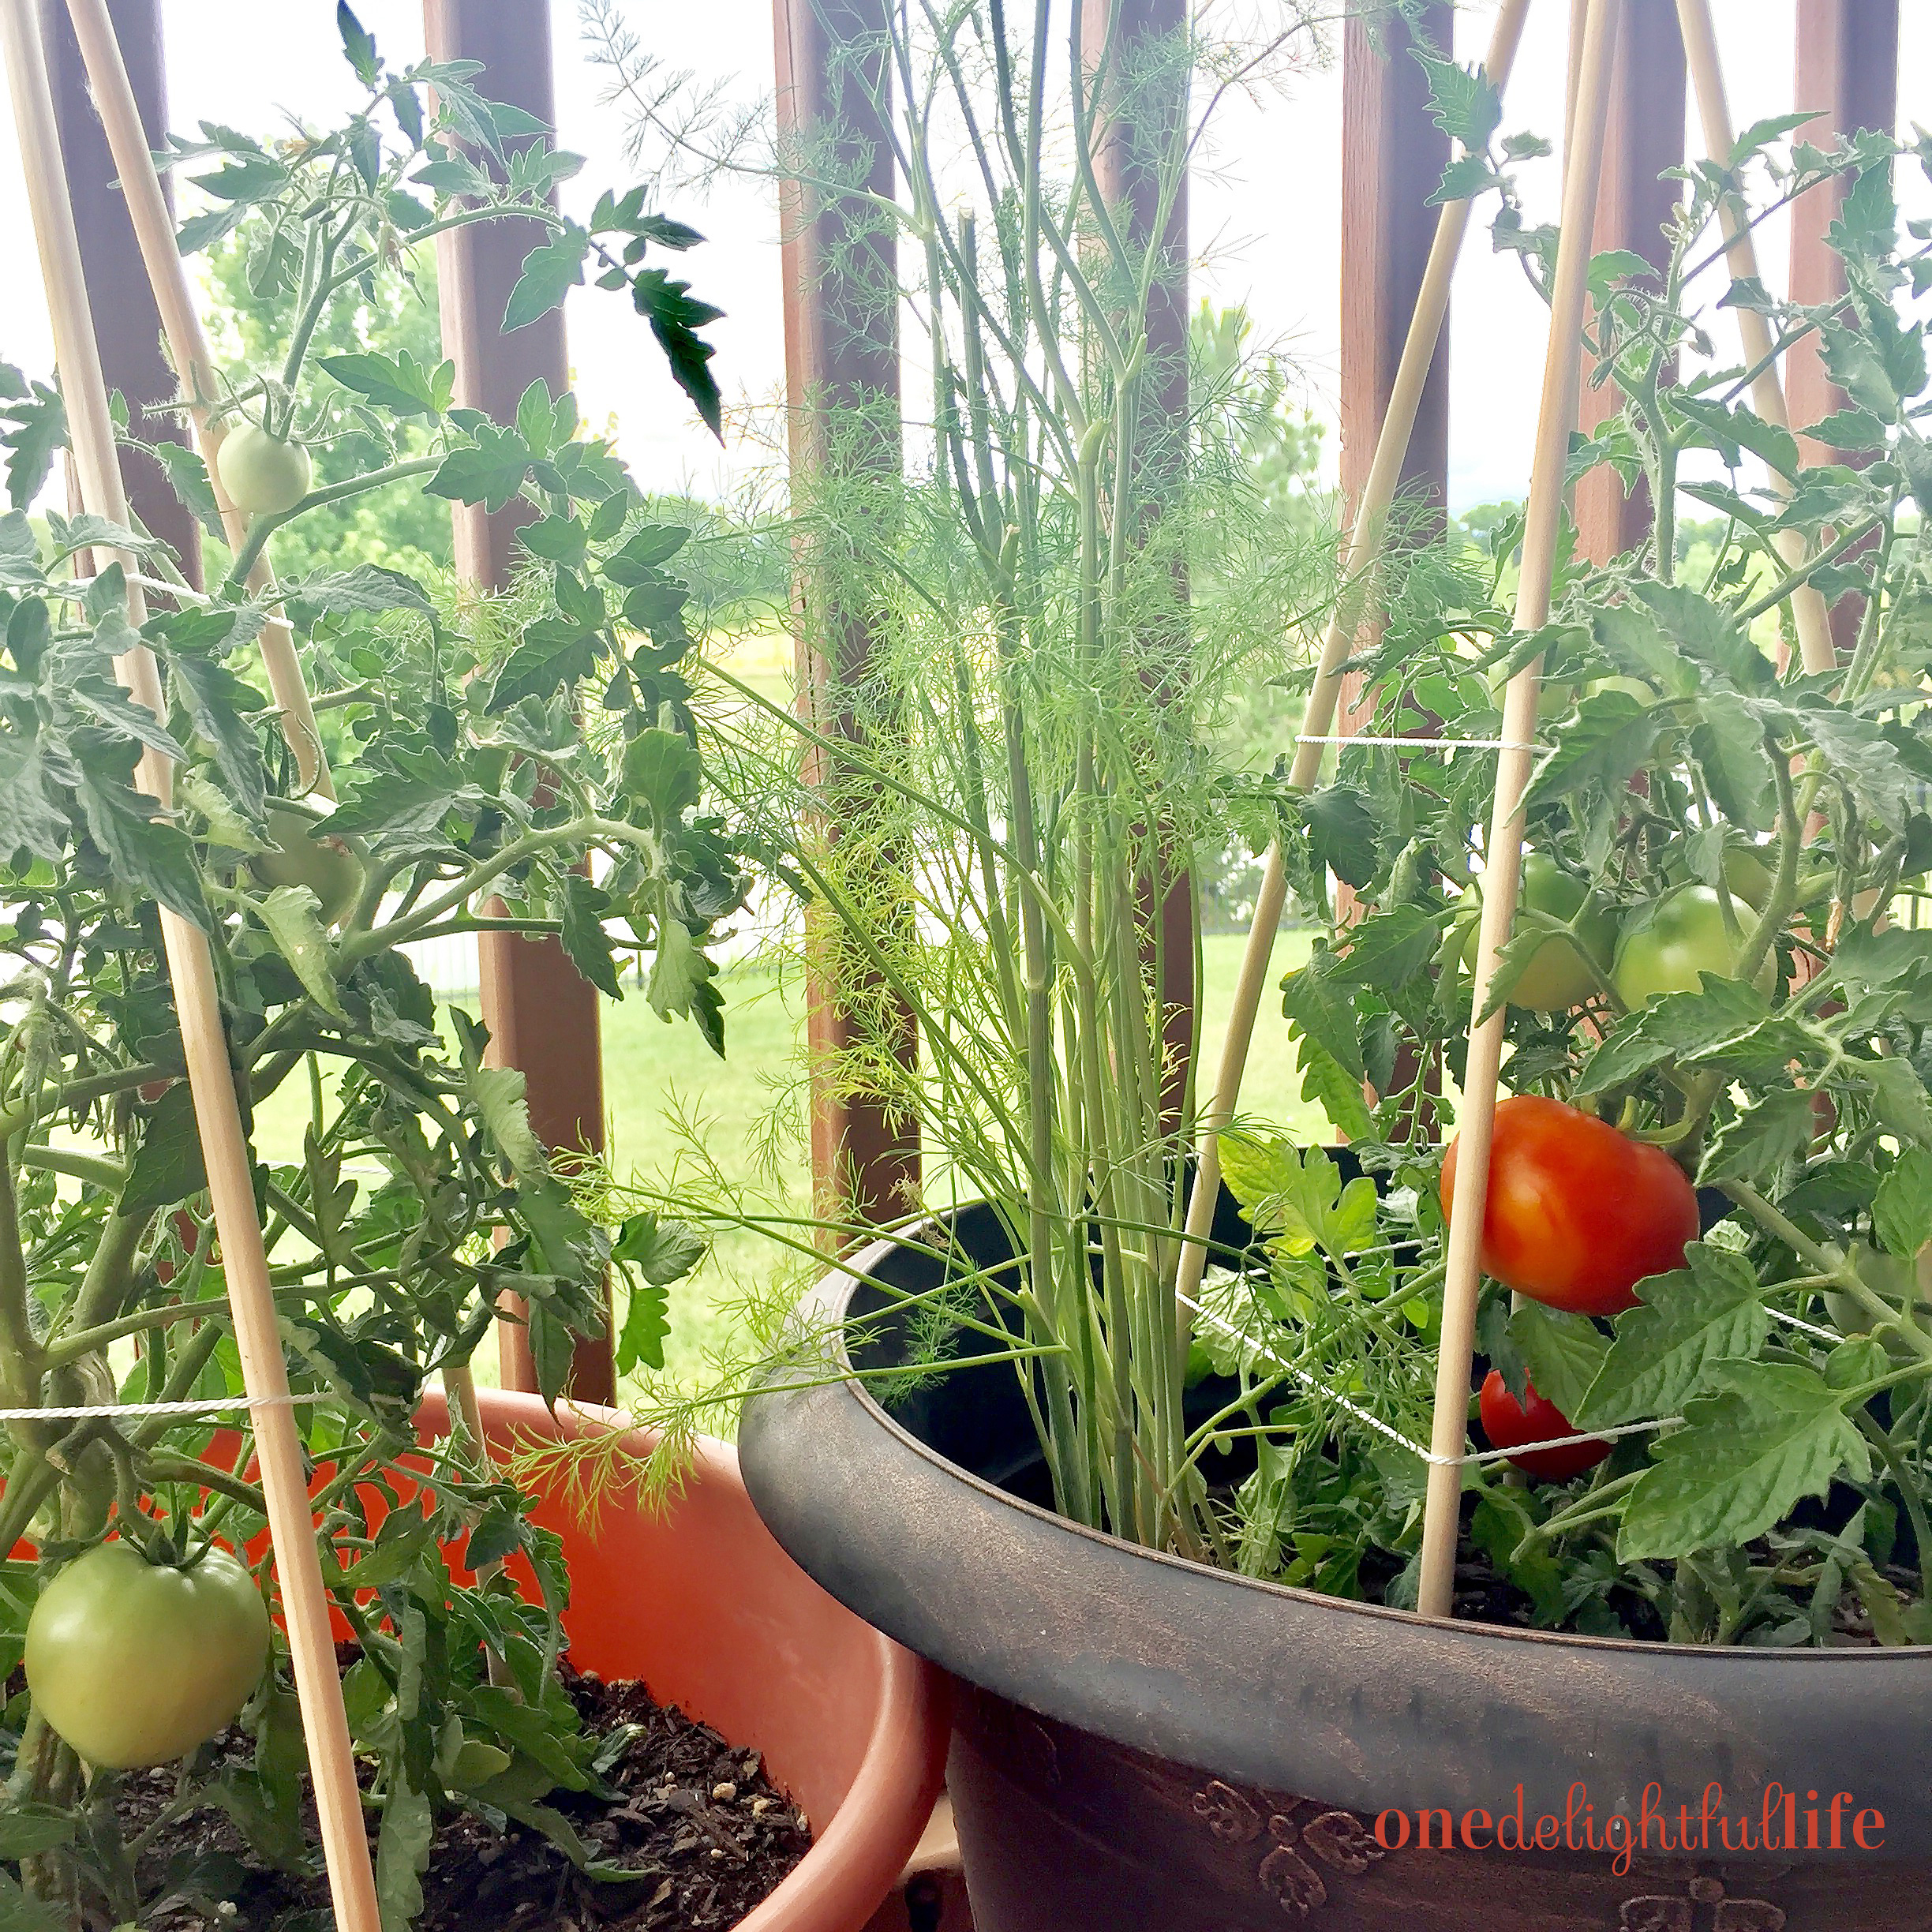 dowel-rod-tomato-cages